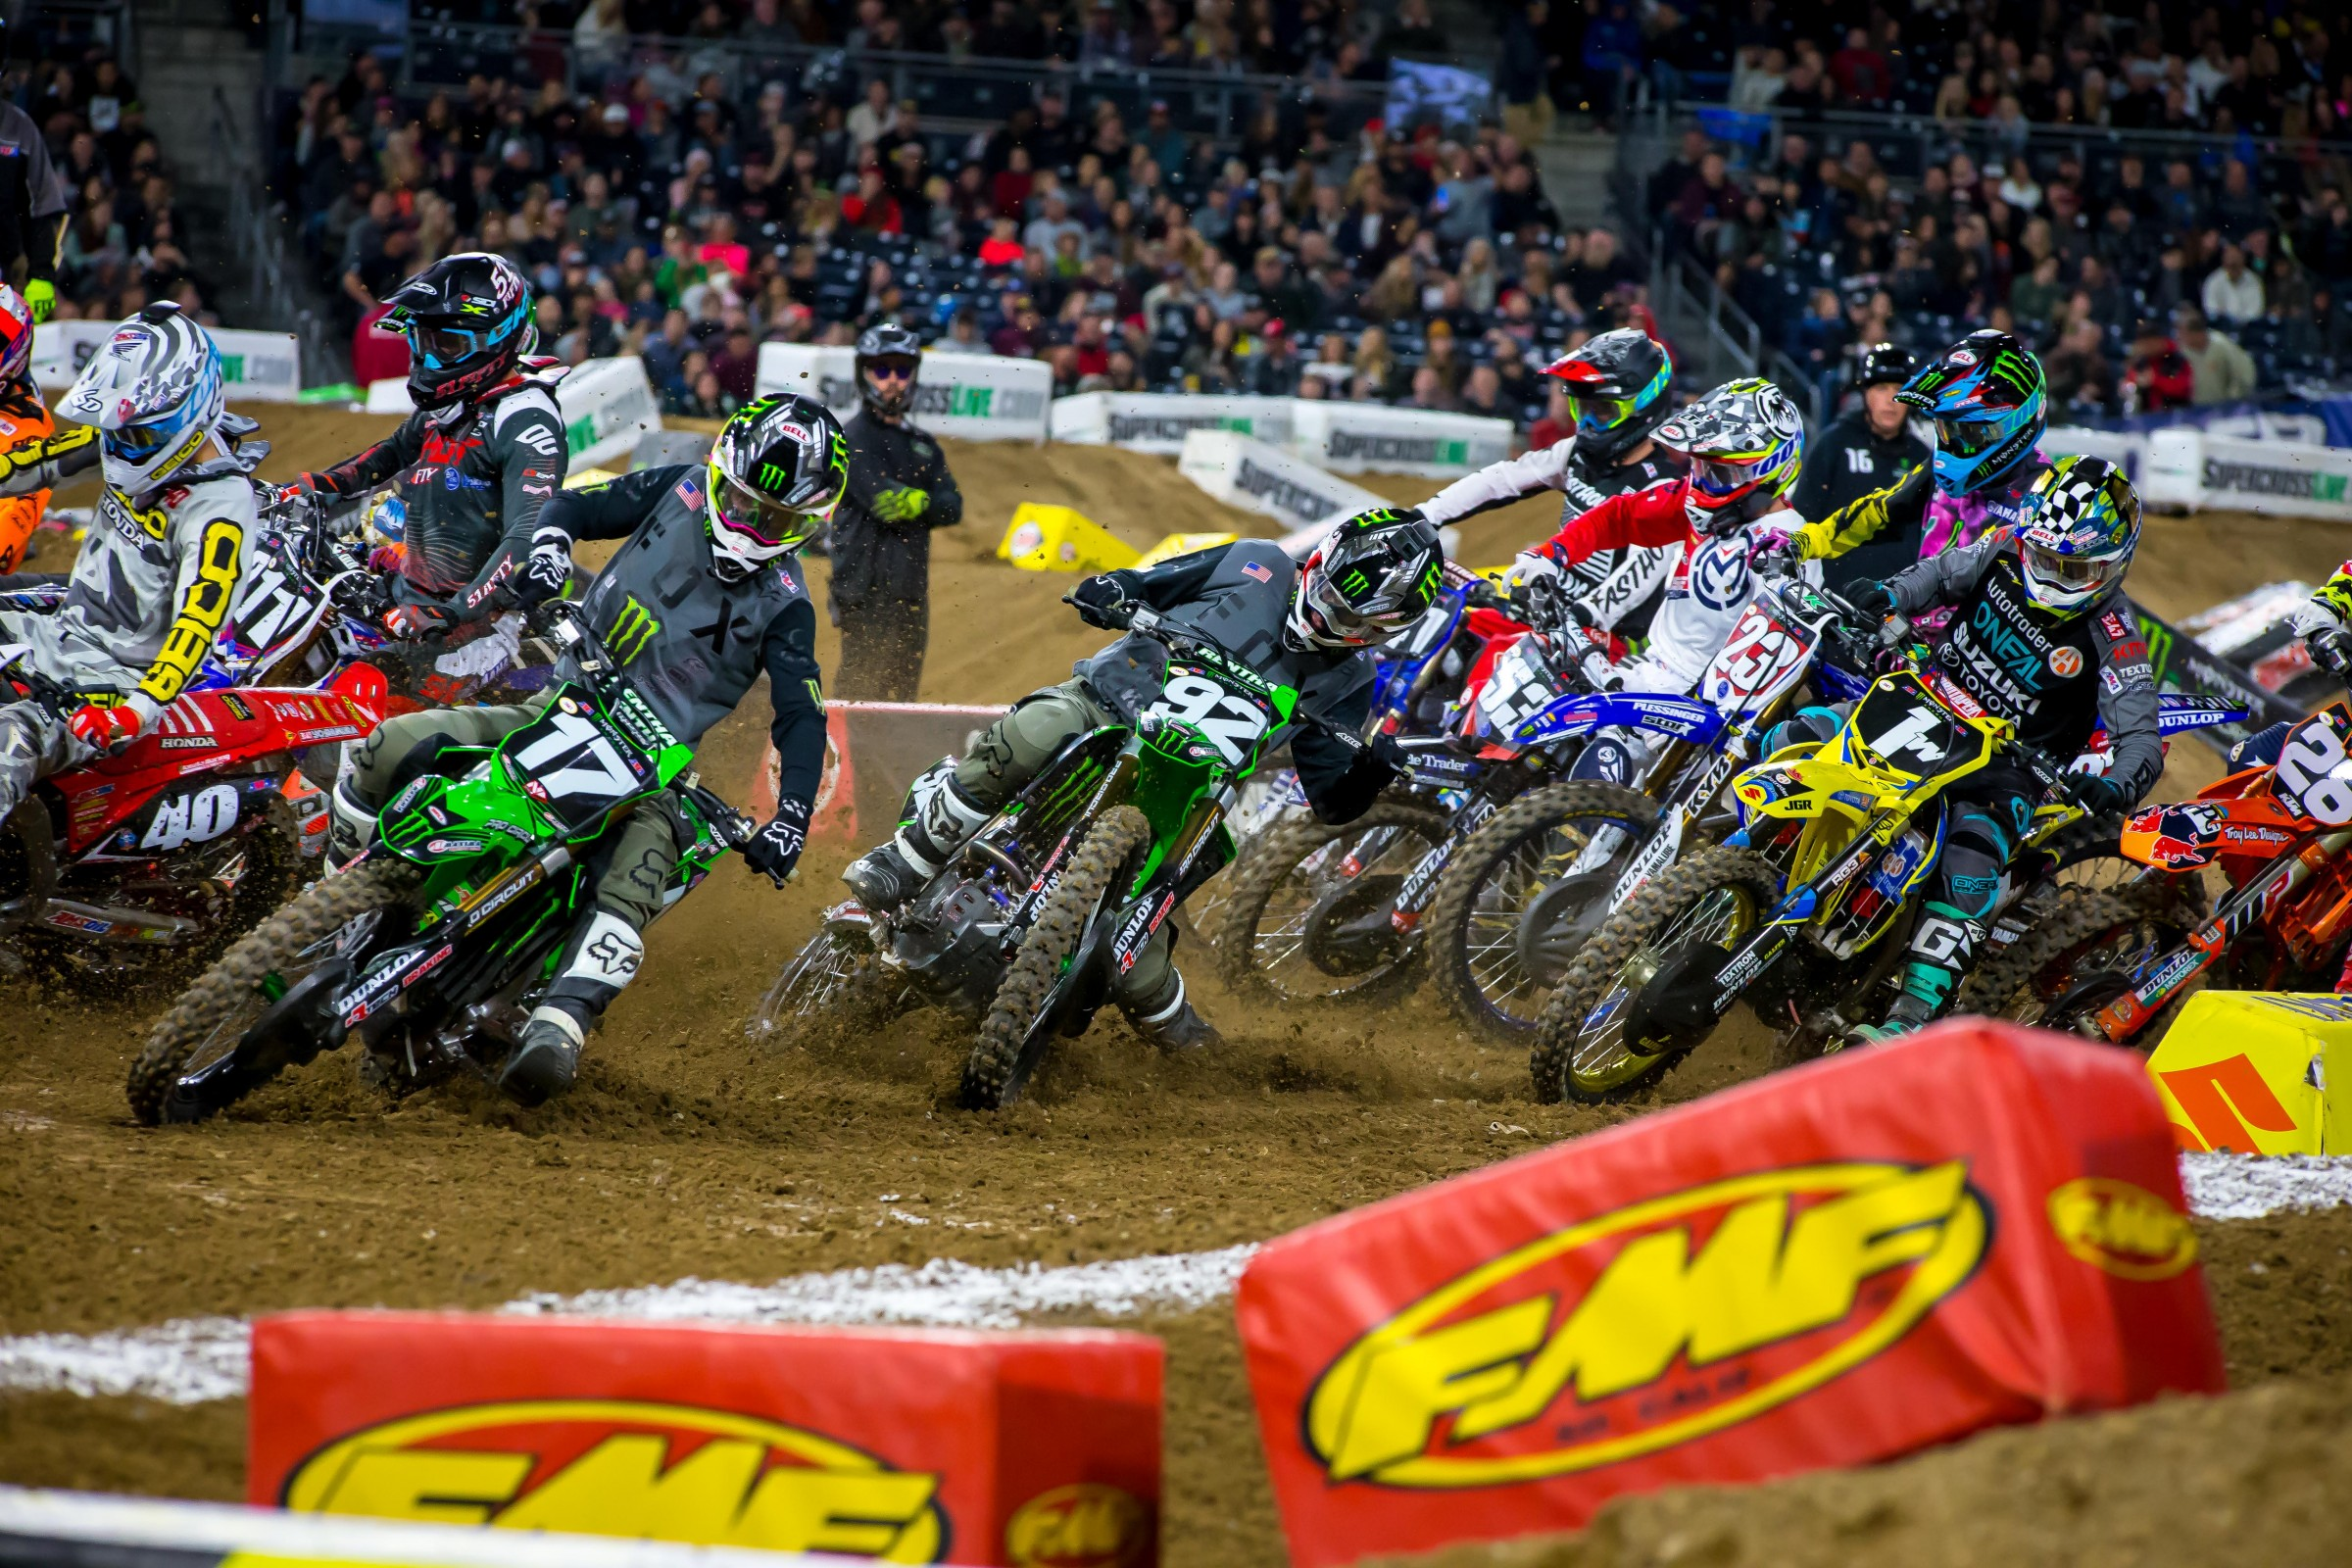 Adam Cianciarulo and Joey Savatgy were killing the starts all day.